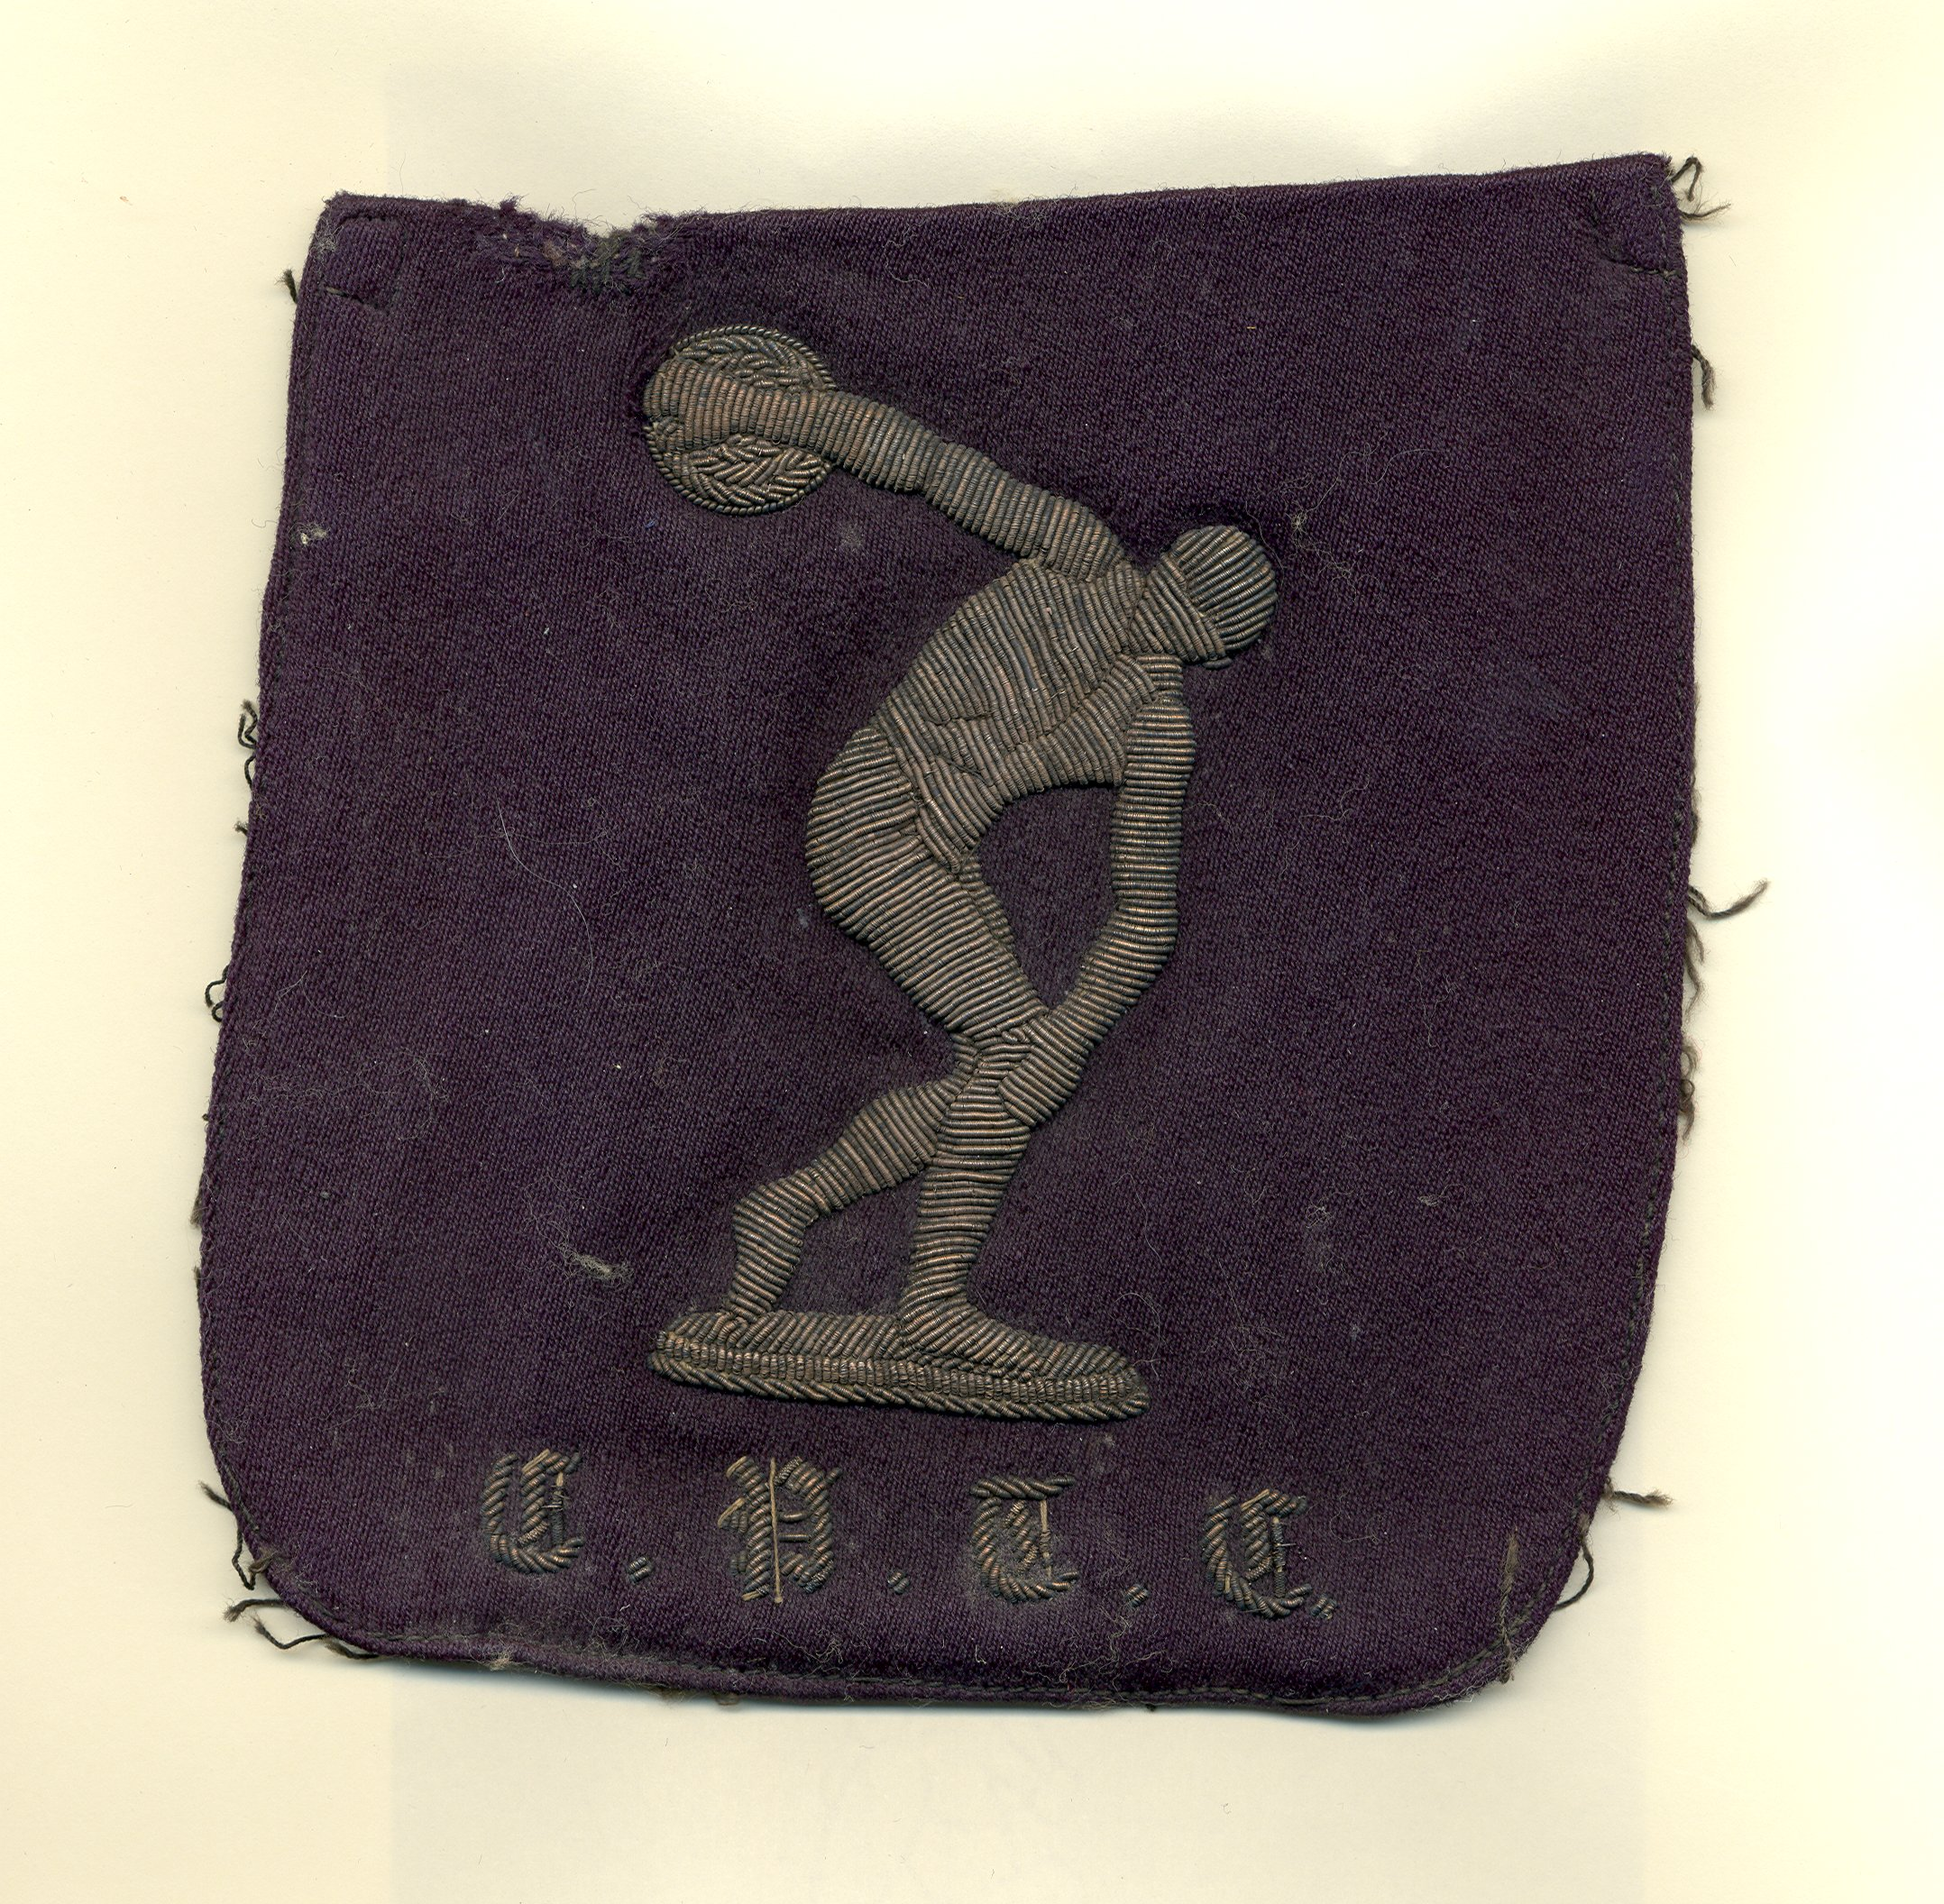 Discobolus of Myron cloth blazer badge